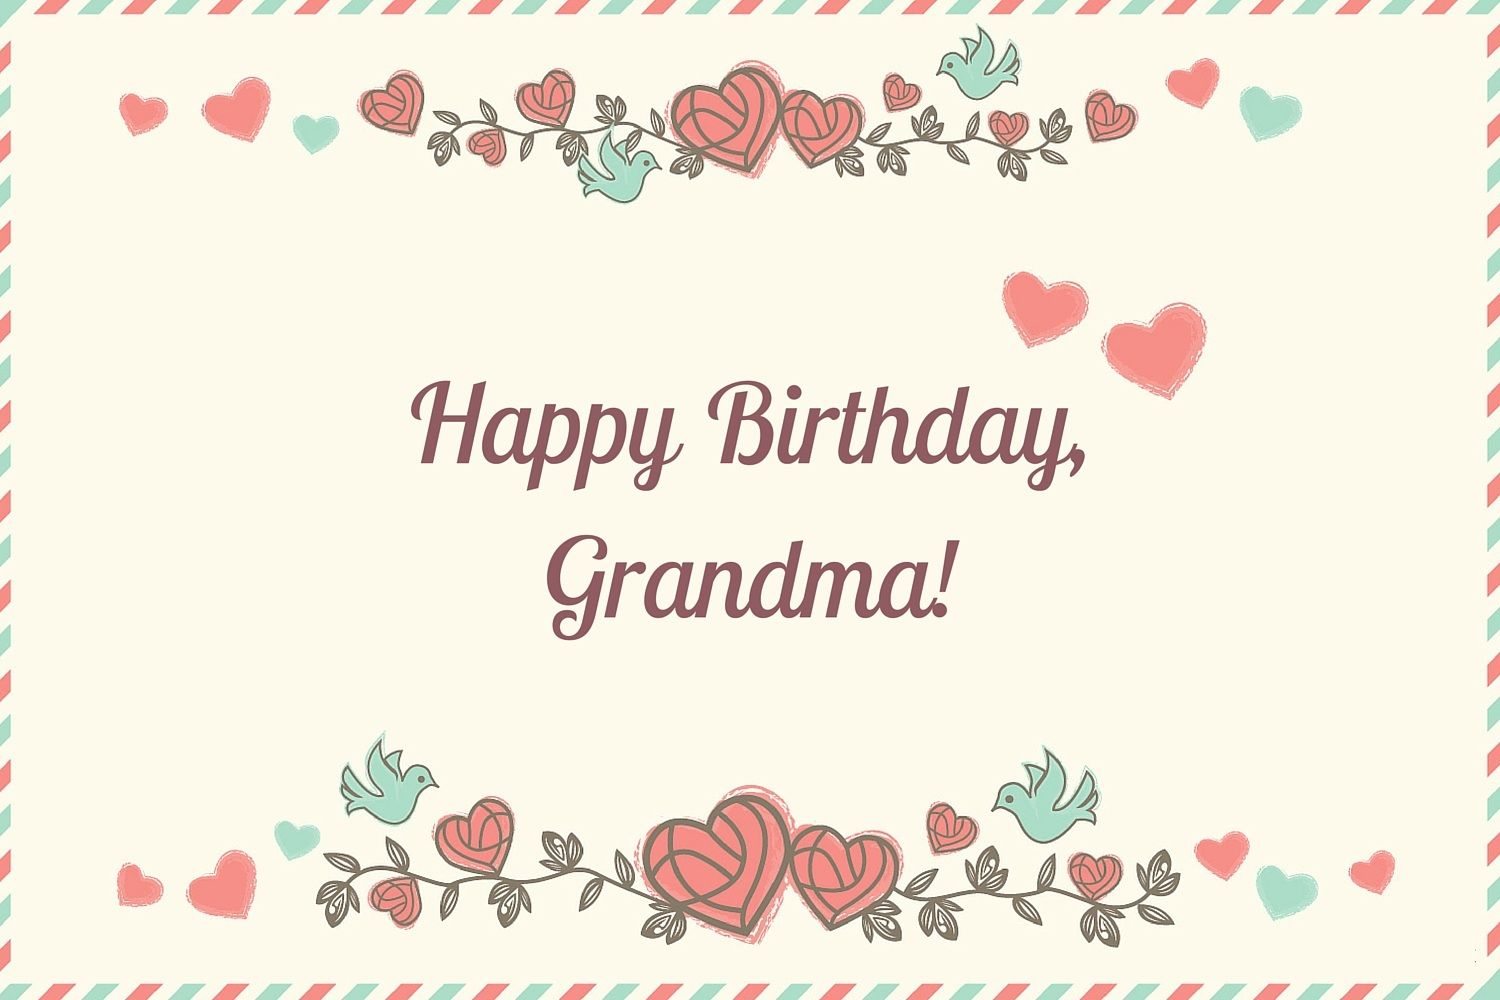 Happy Birthday Grandma Birthday Cards Messages Images Happy